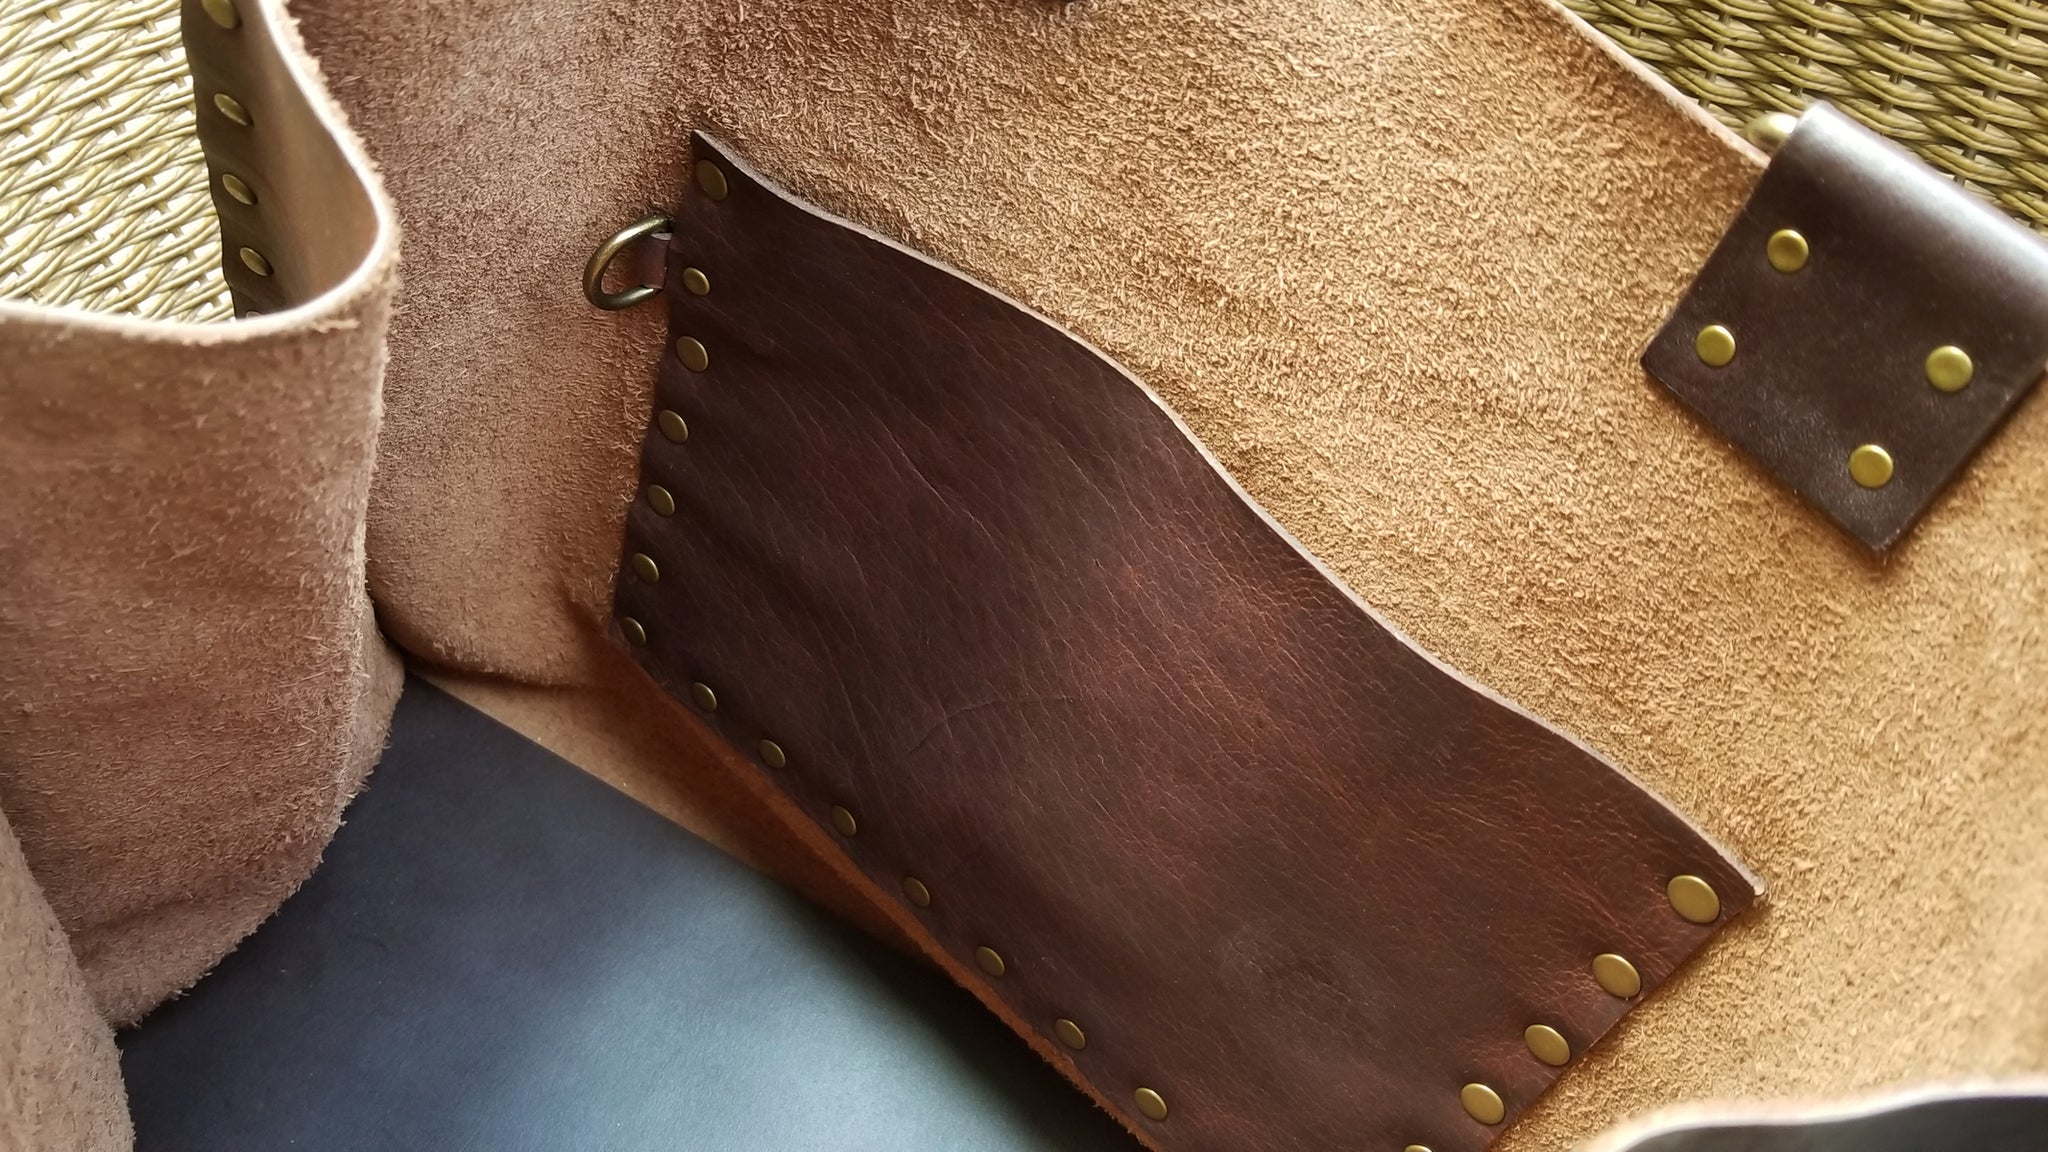 nterior pocket of Malia leather tote bag carry all in canela navajo bison leather